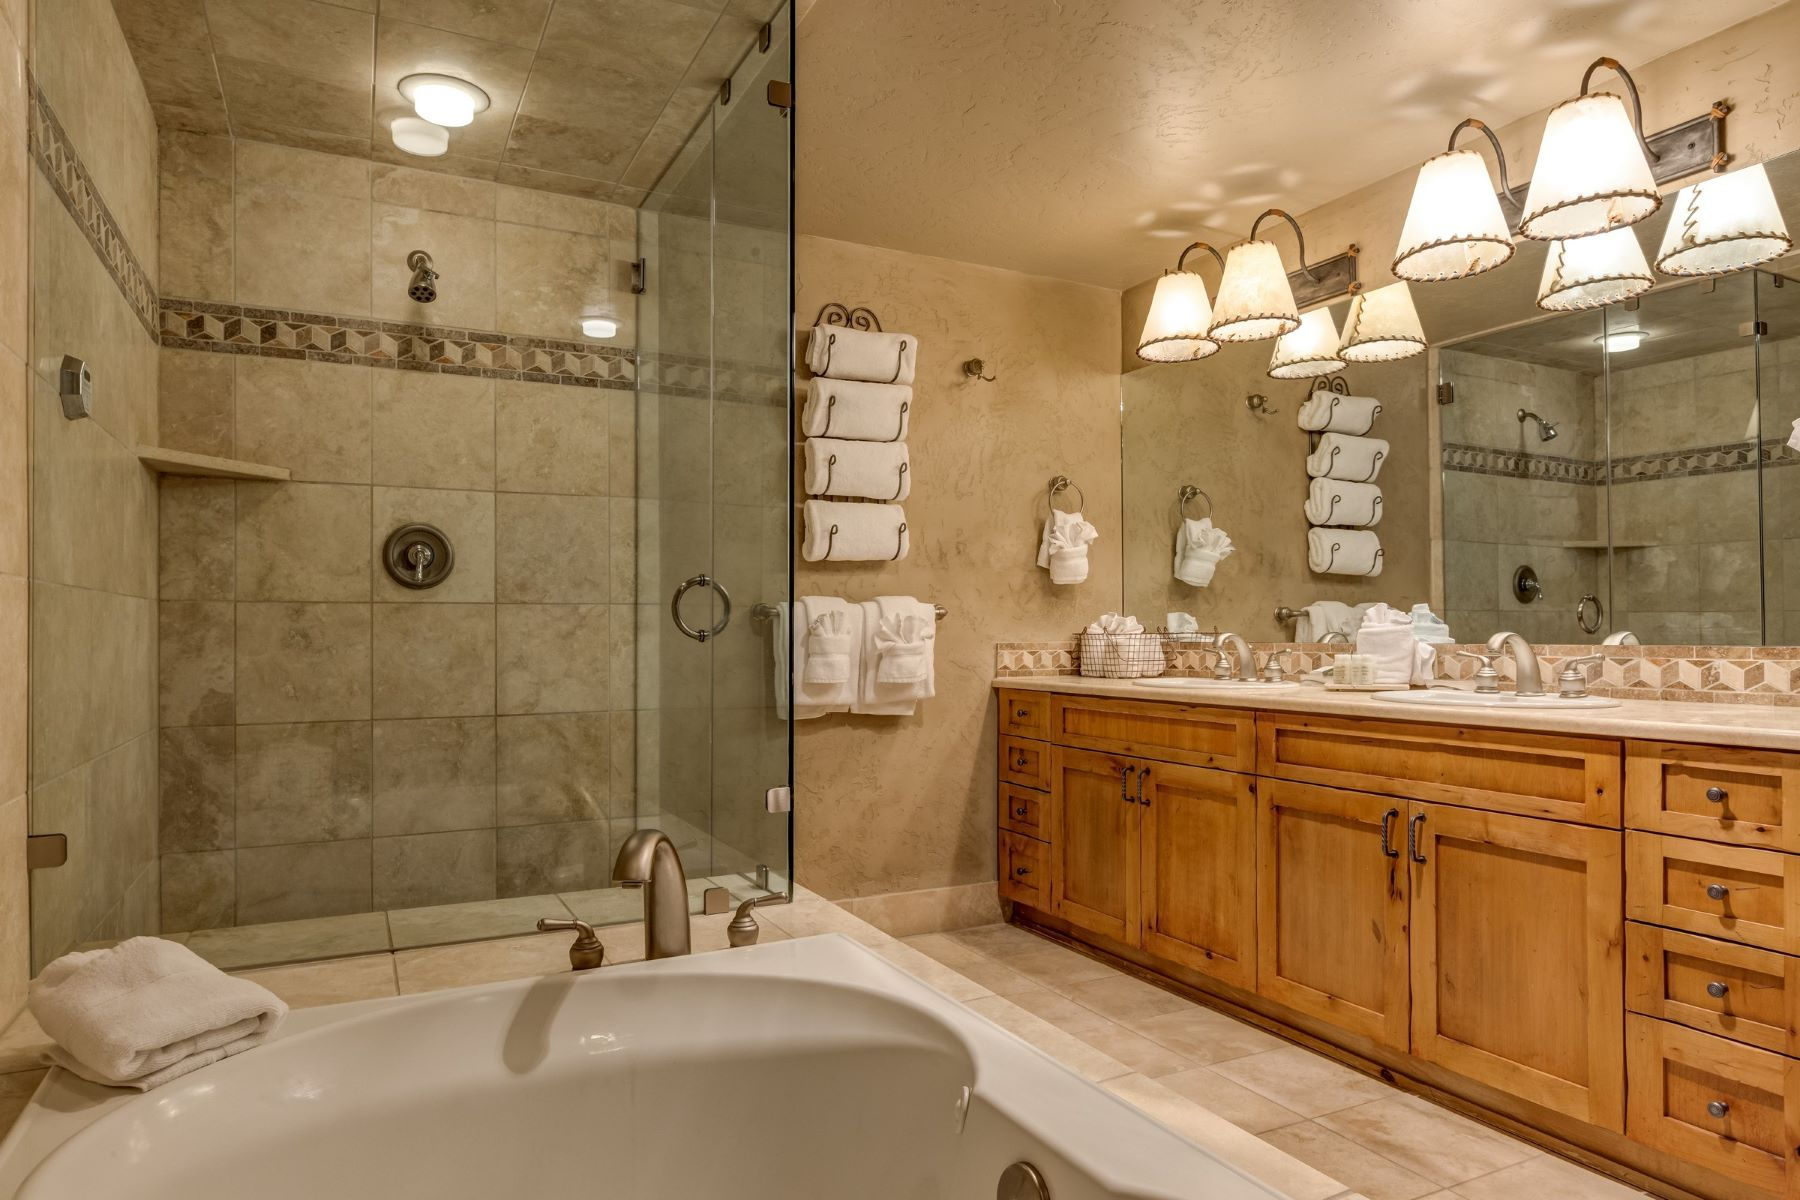 Additional photo for property listing at Steamboat Grand Resort 2300 Mt. Werner Cir 706 QI Steamboat Springs, Colorado 80487 United States